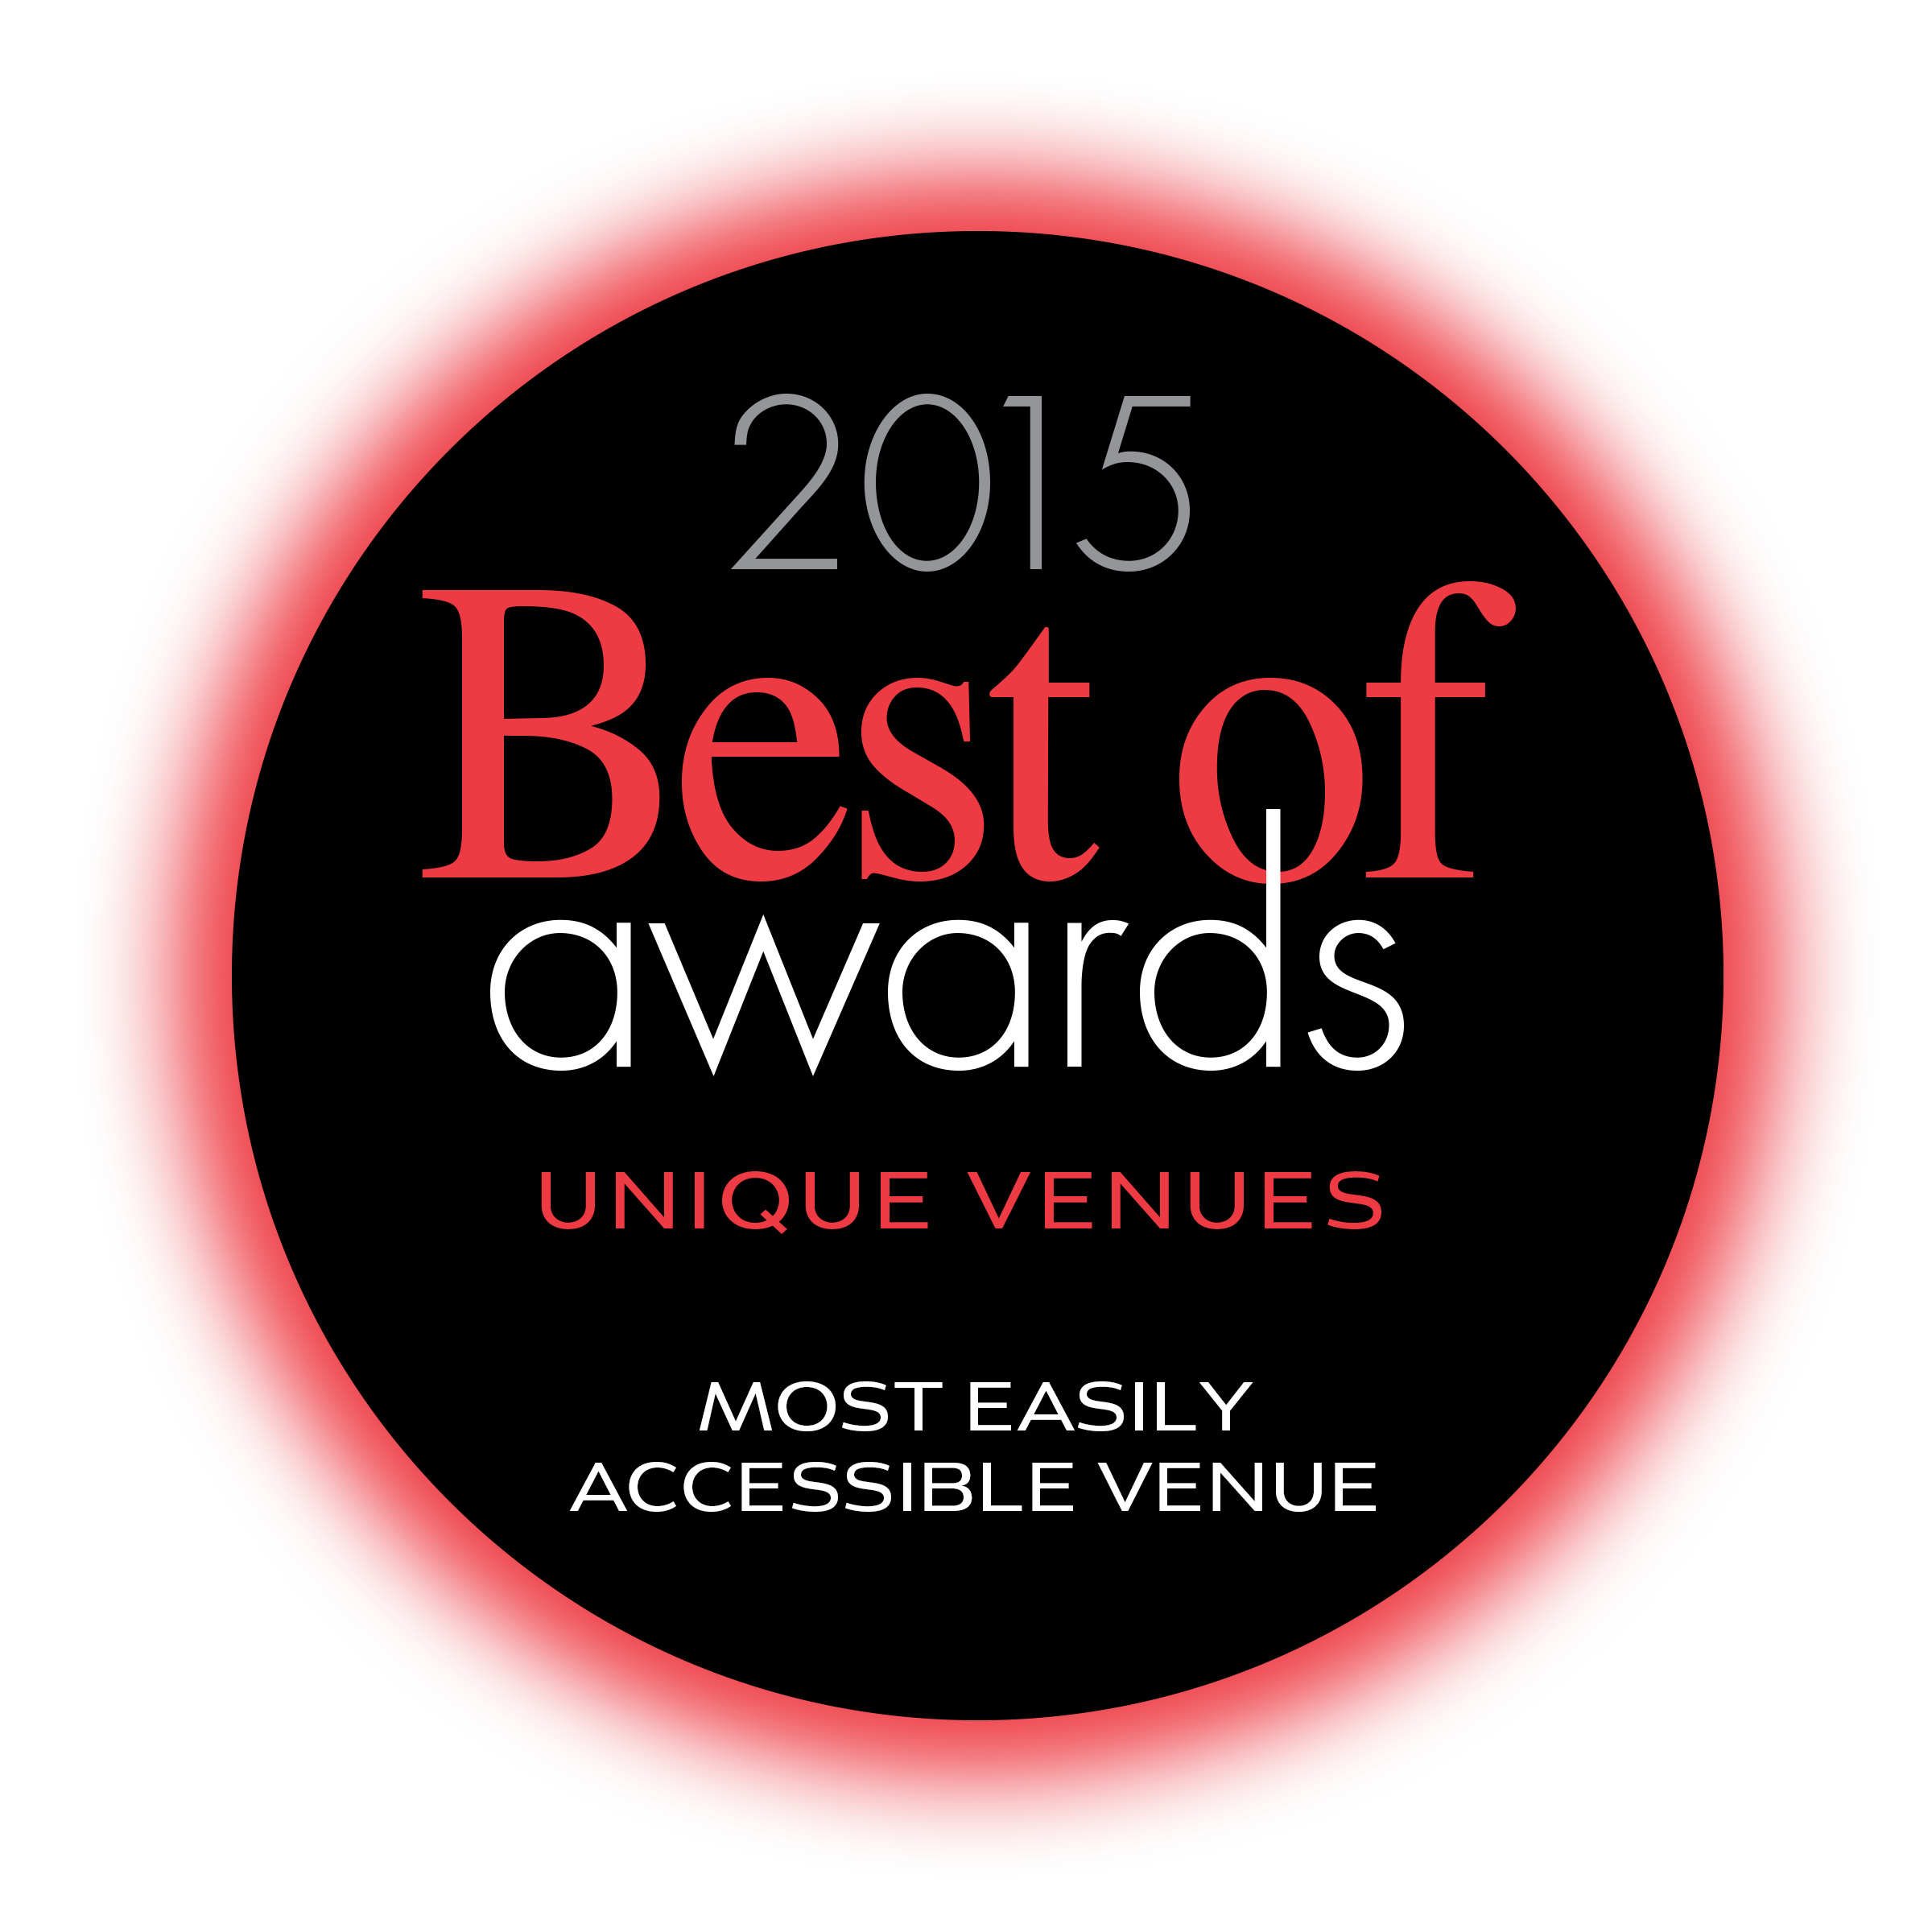 Unique Vendues Best of Awards 2015 Most Easily Accessible Venue